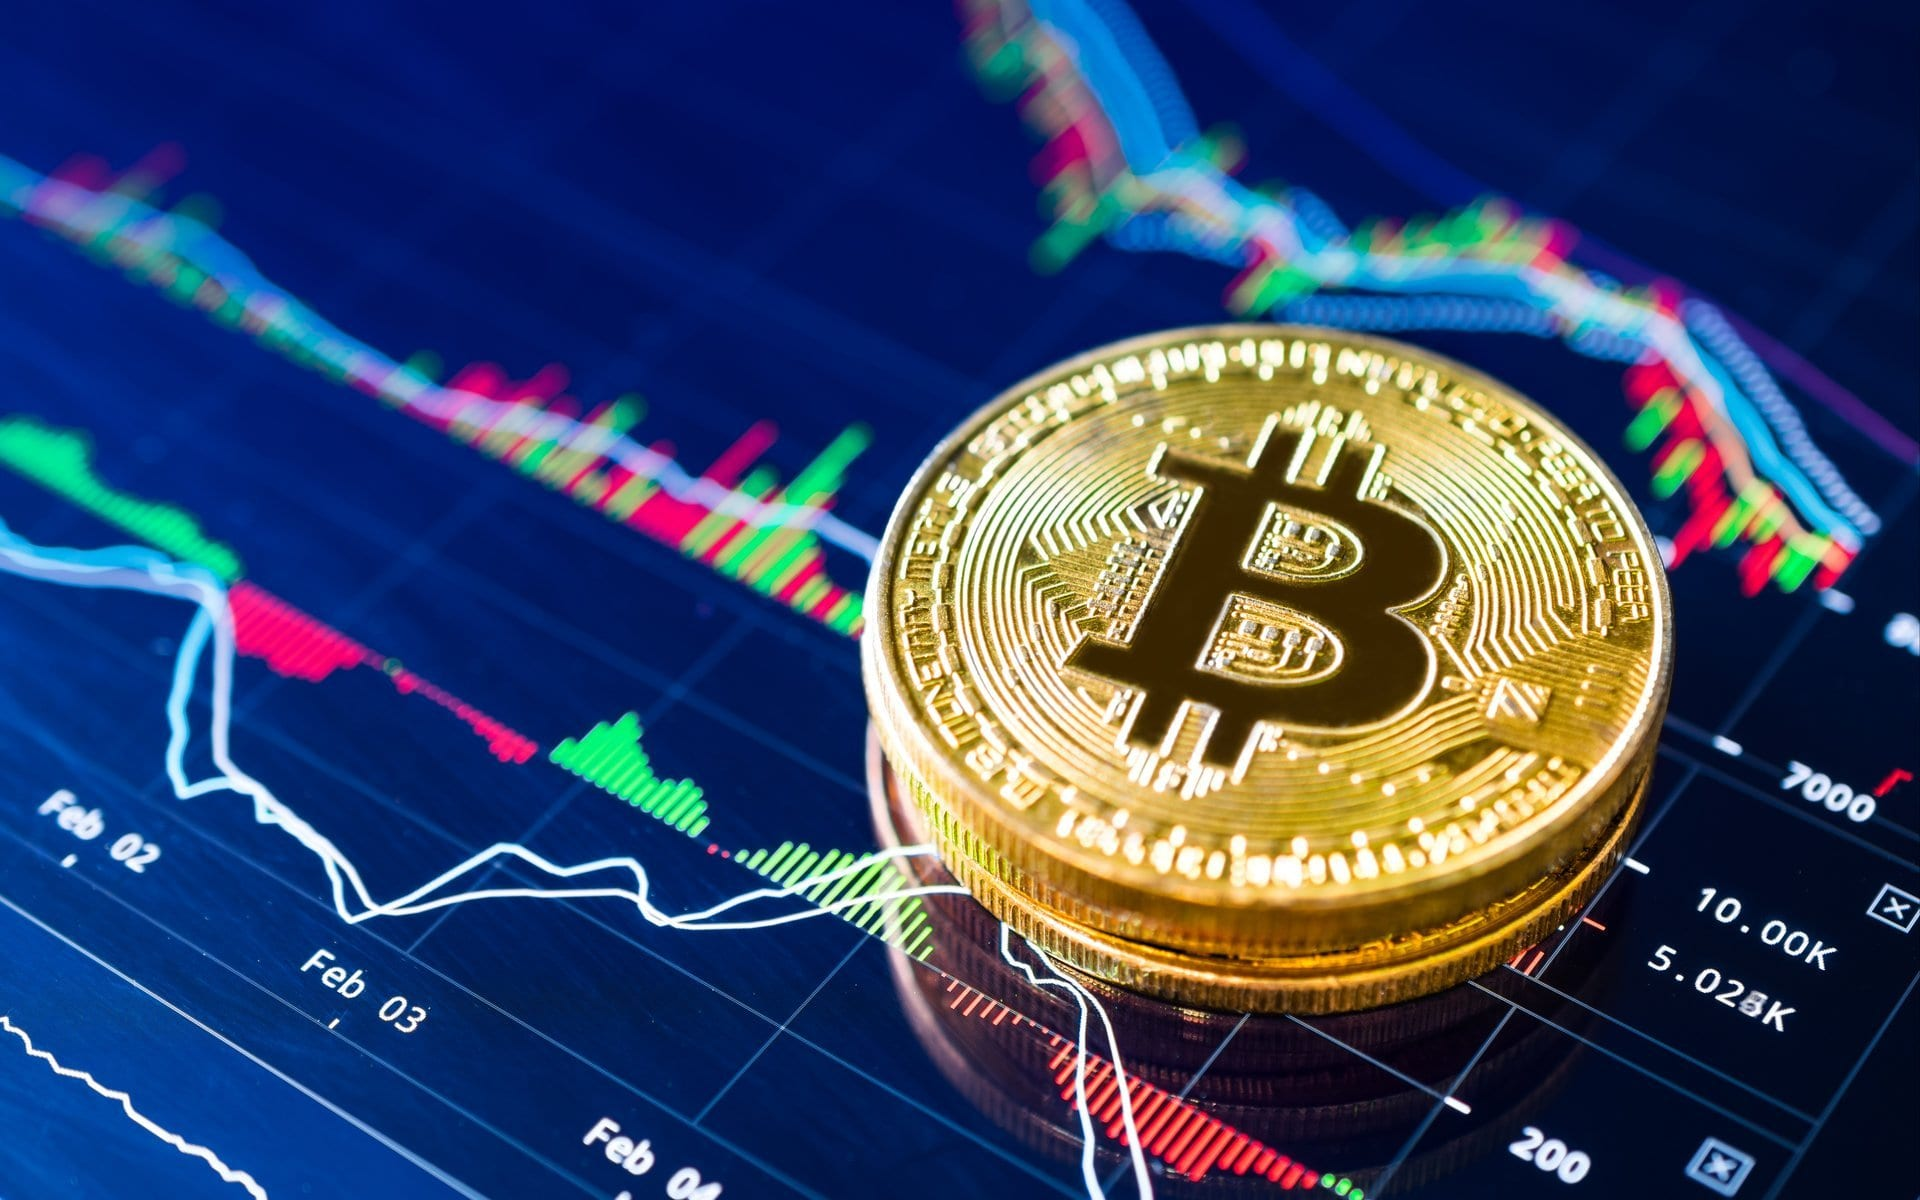 PwC Backs Stablecoin, The Daily BTC Volatility Low